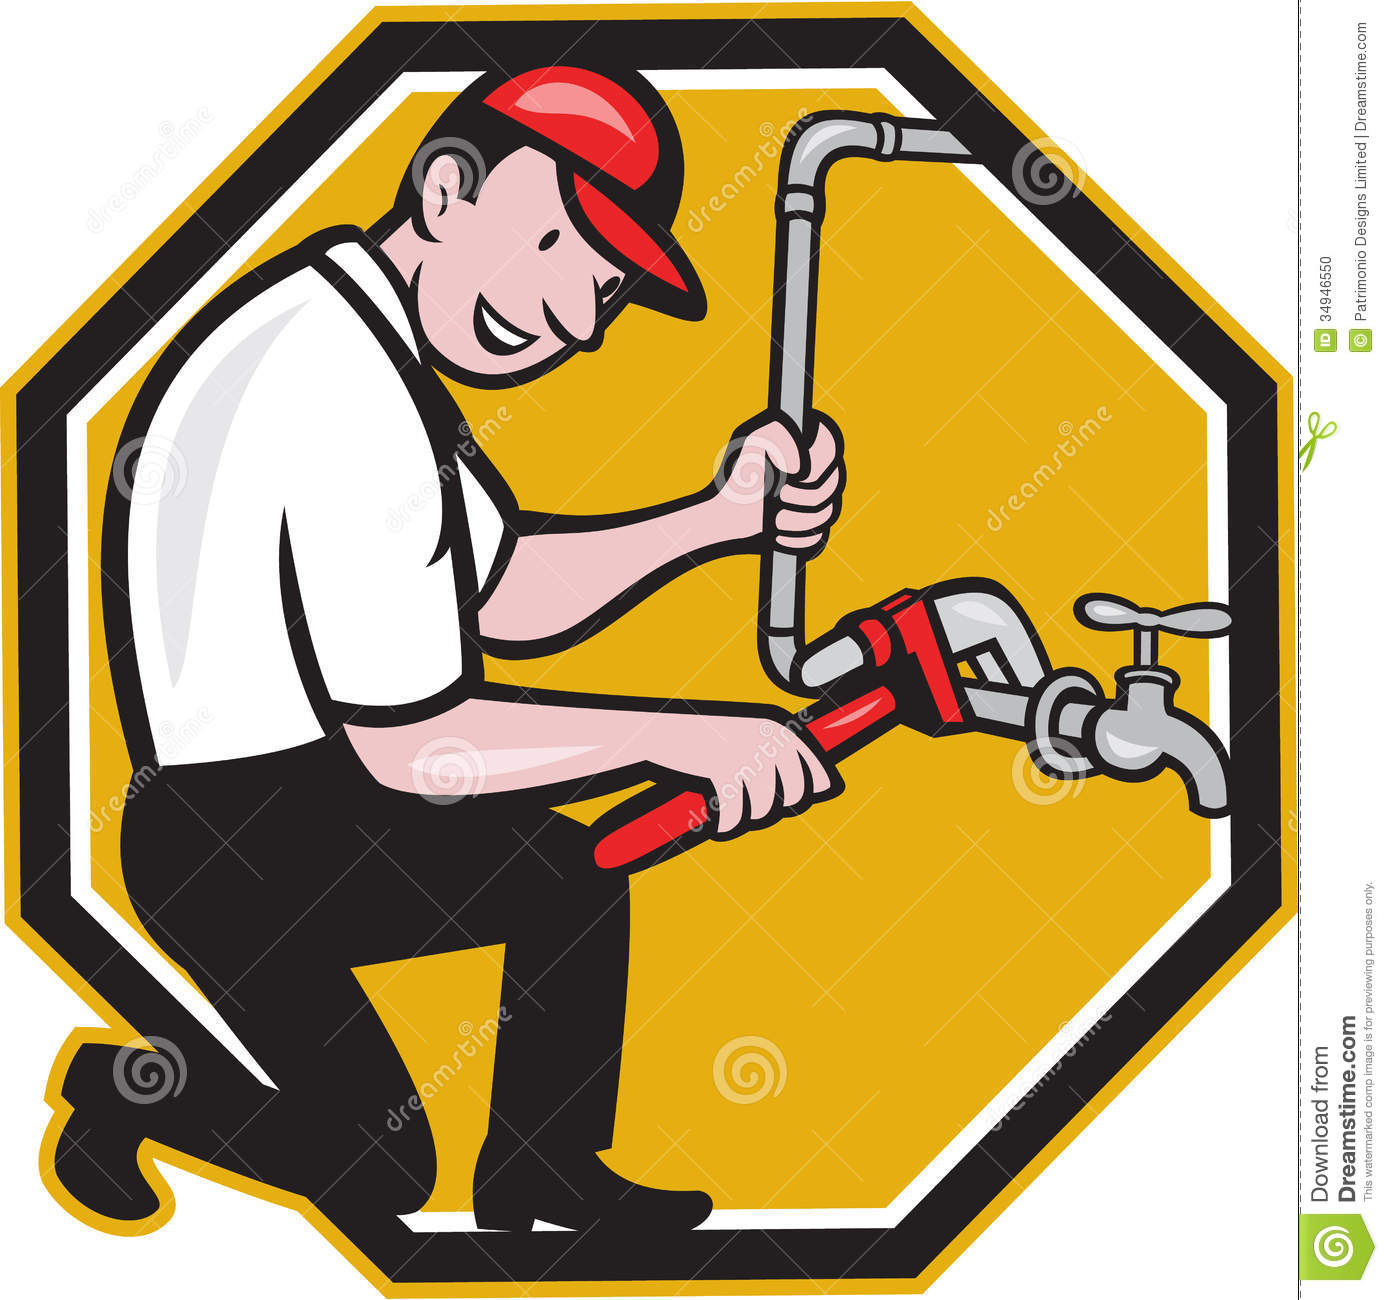 Plumber Illustrations and Clip Art. 35,145 Plumber royalty ...